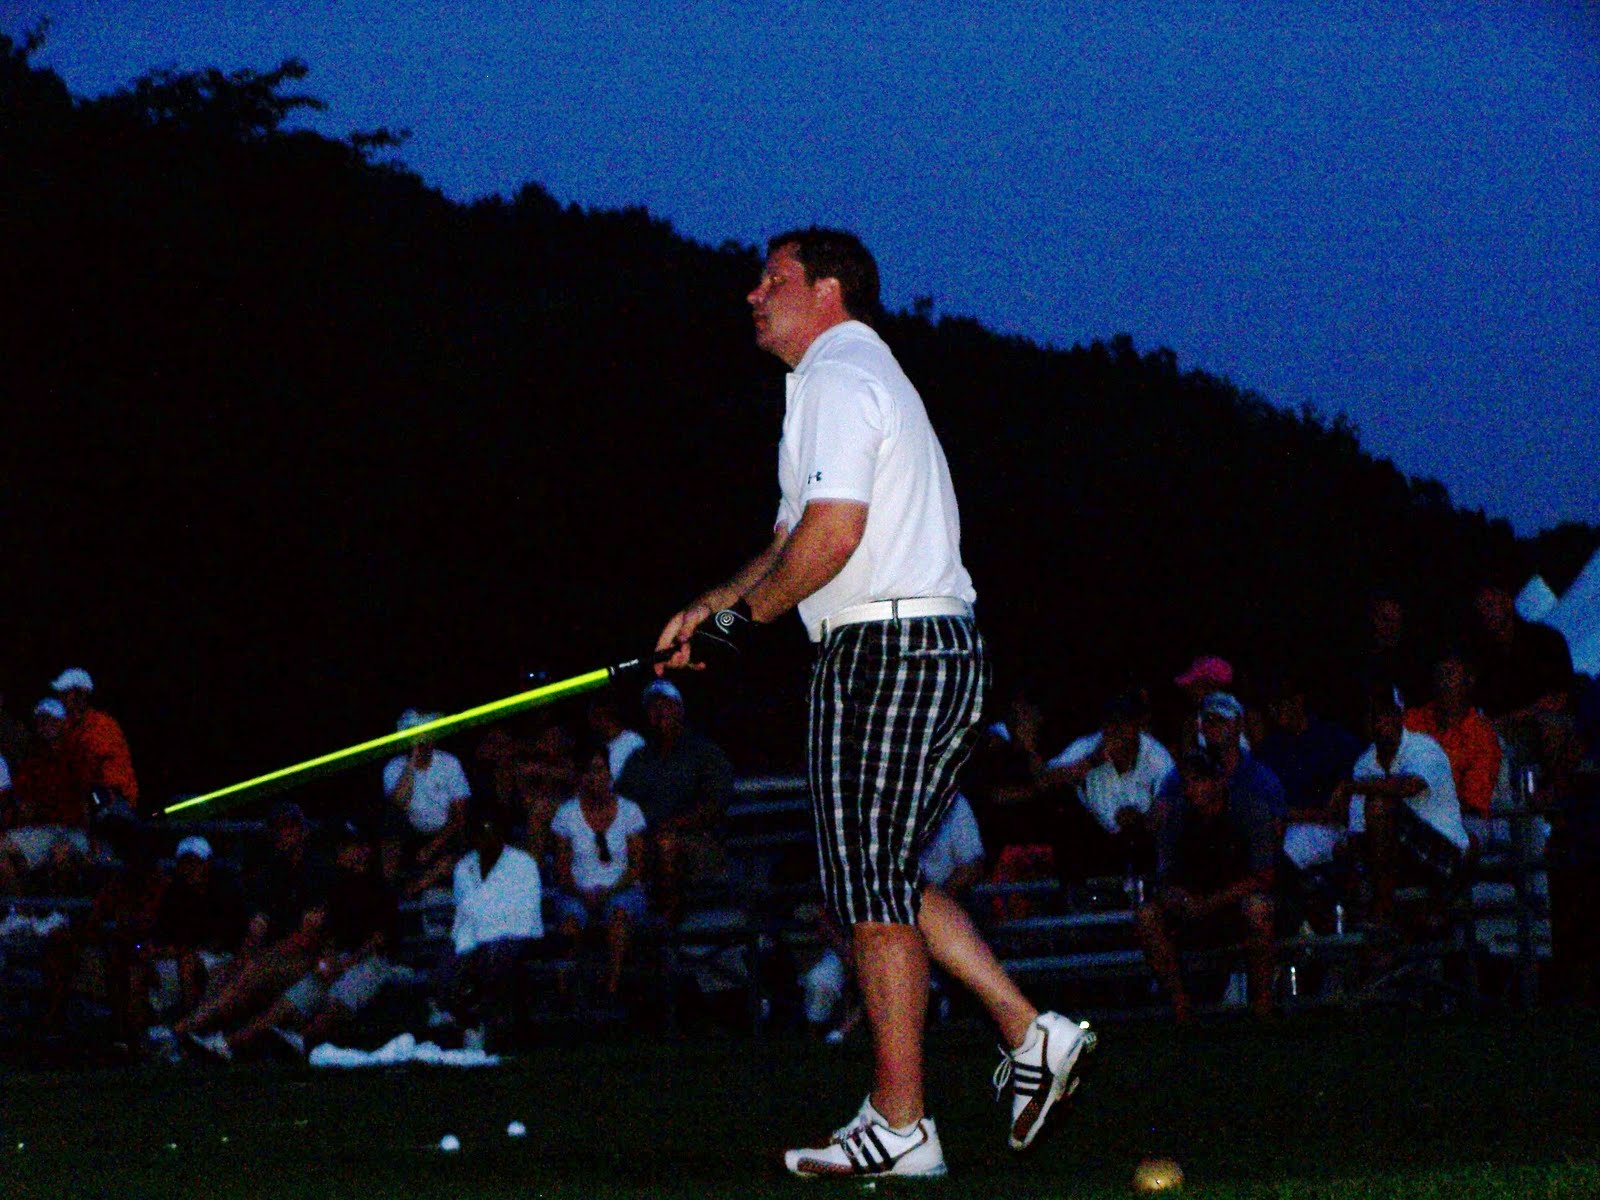 Golf Drivers Used by Long Drive Champions